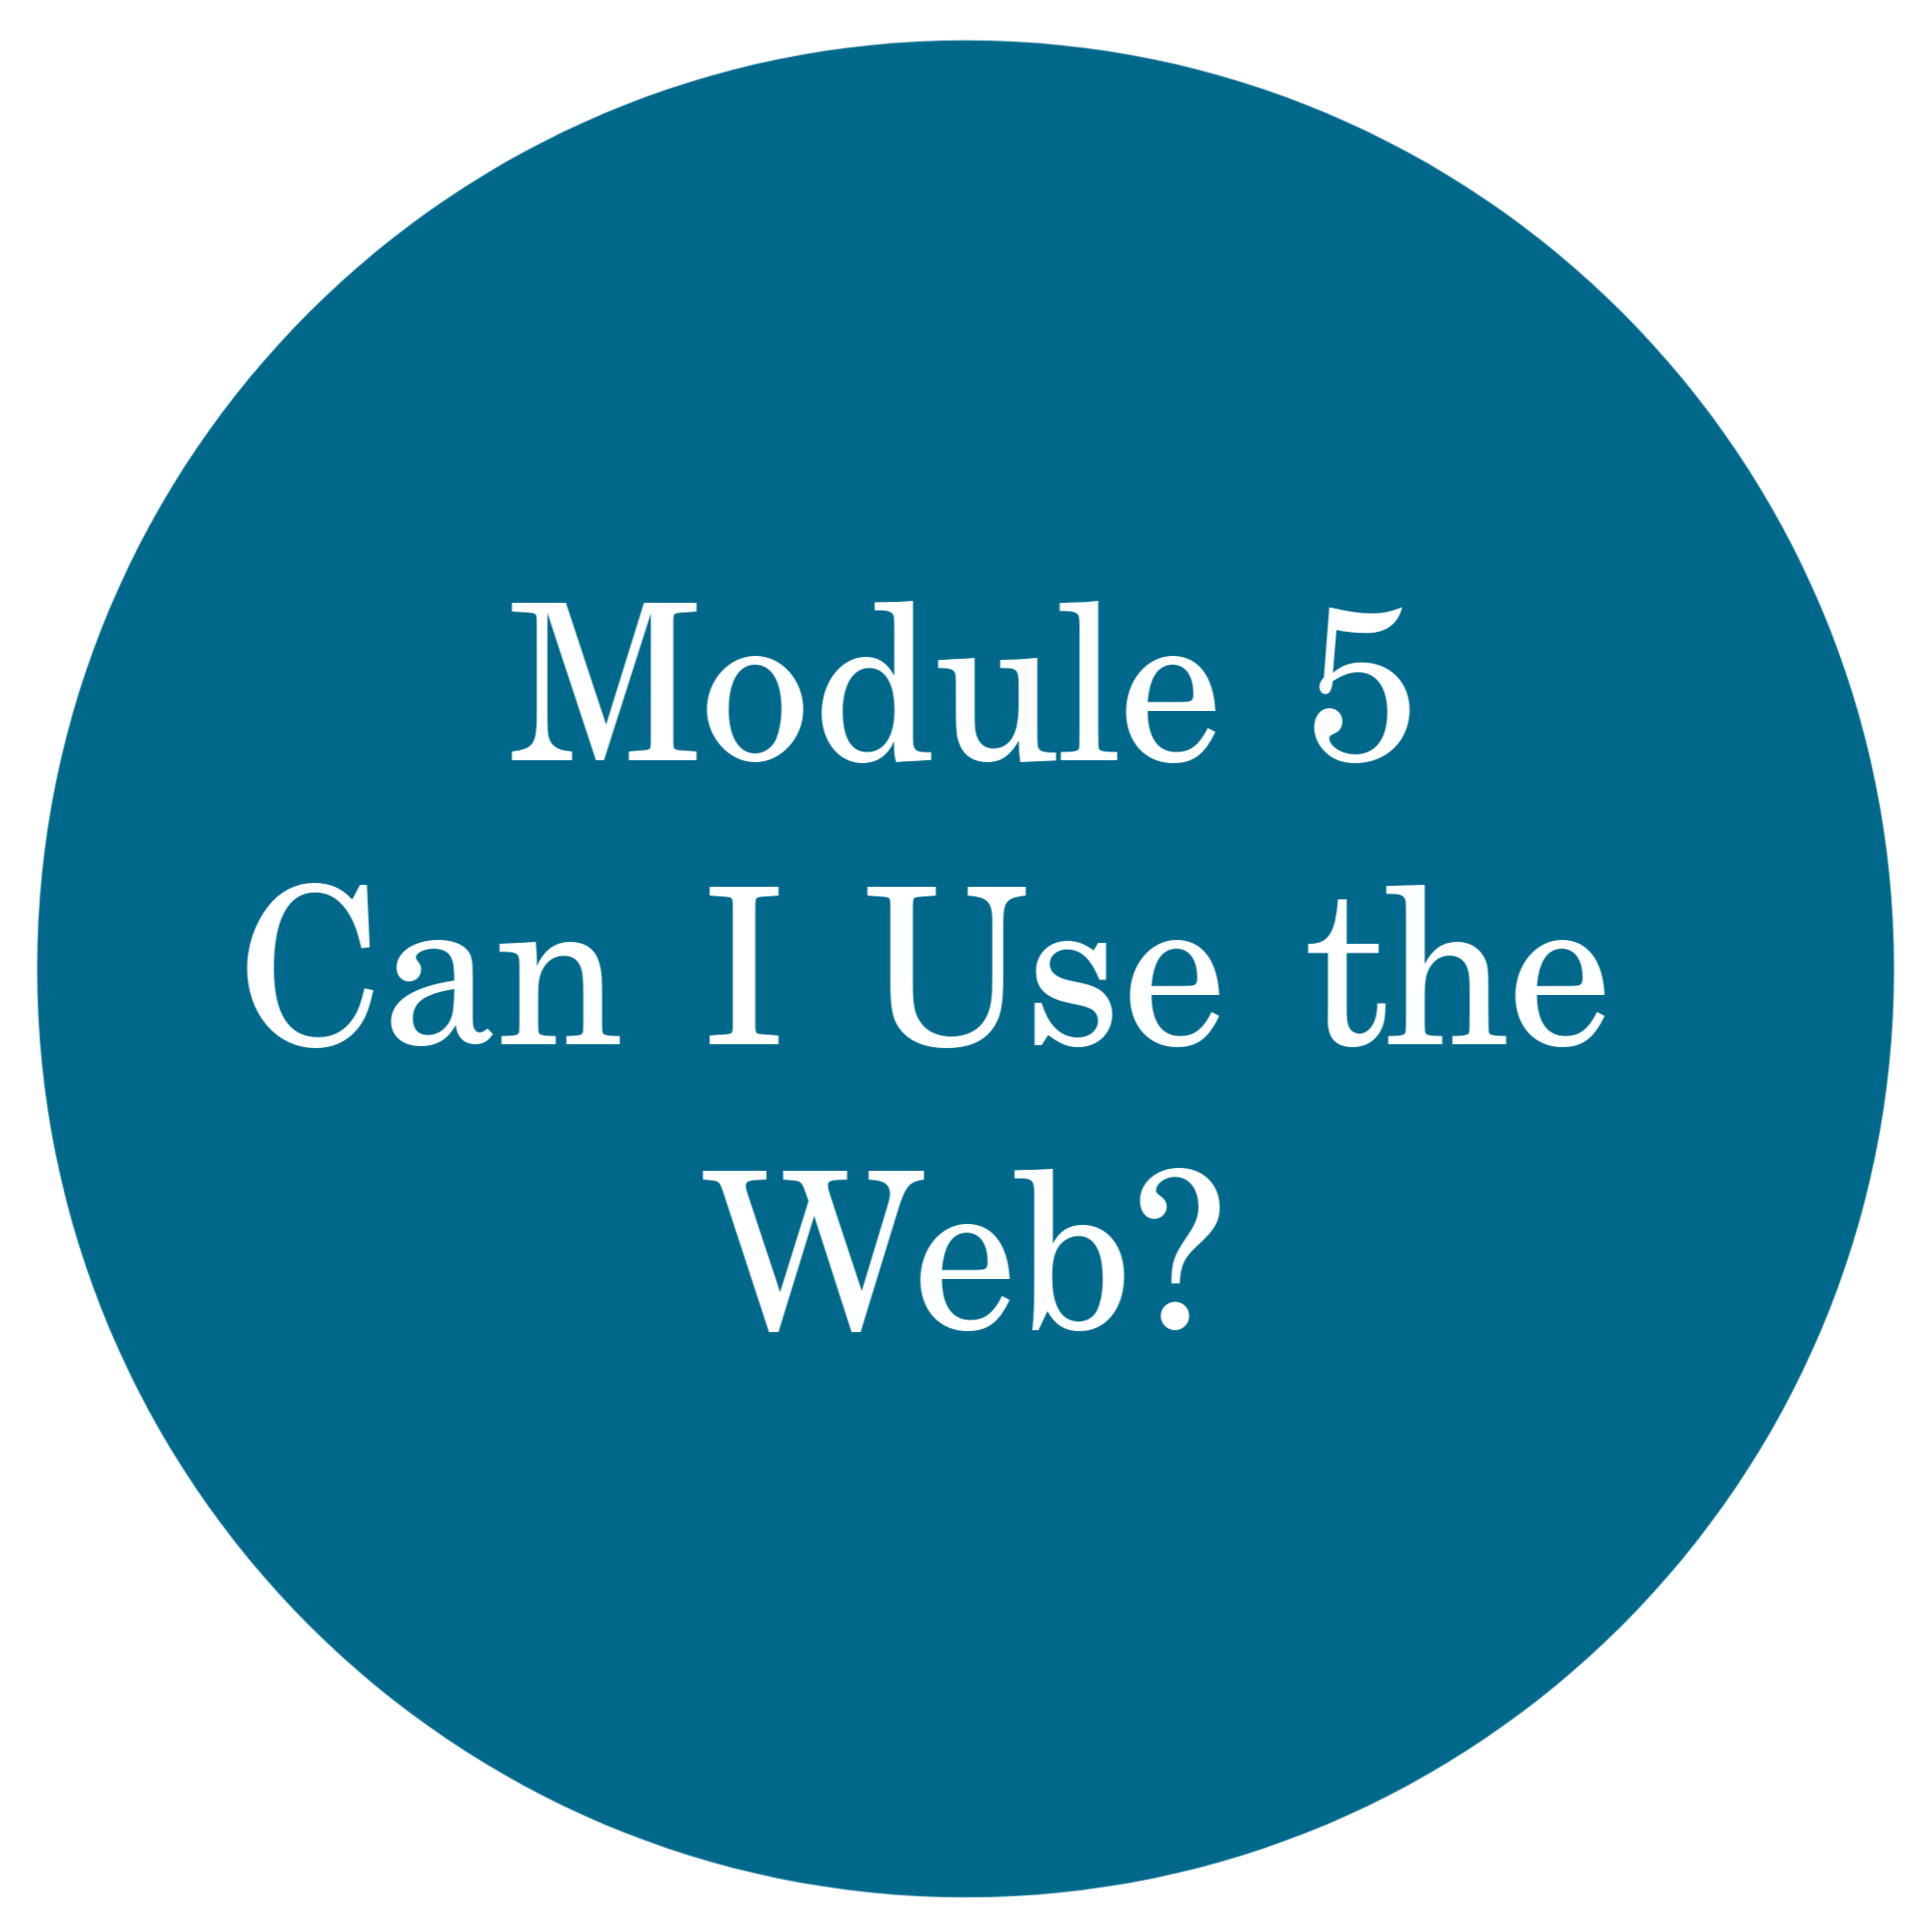 Module 5 Can I Use the Web?